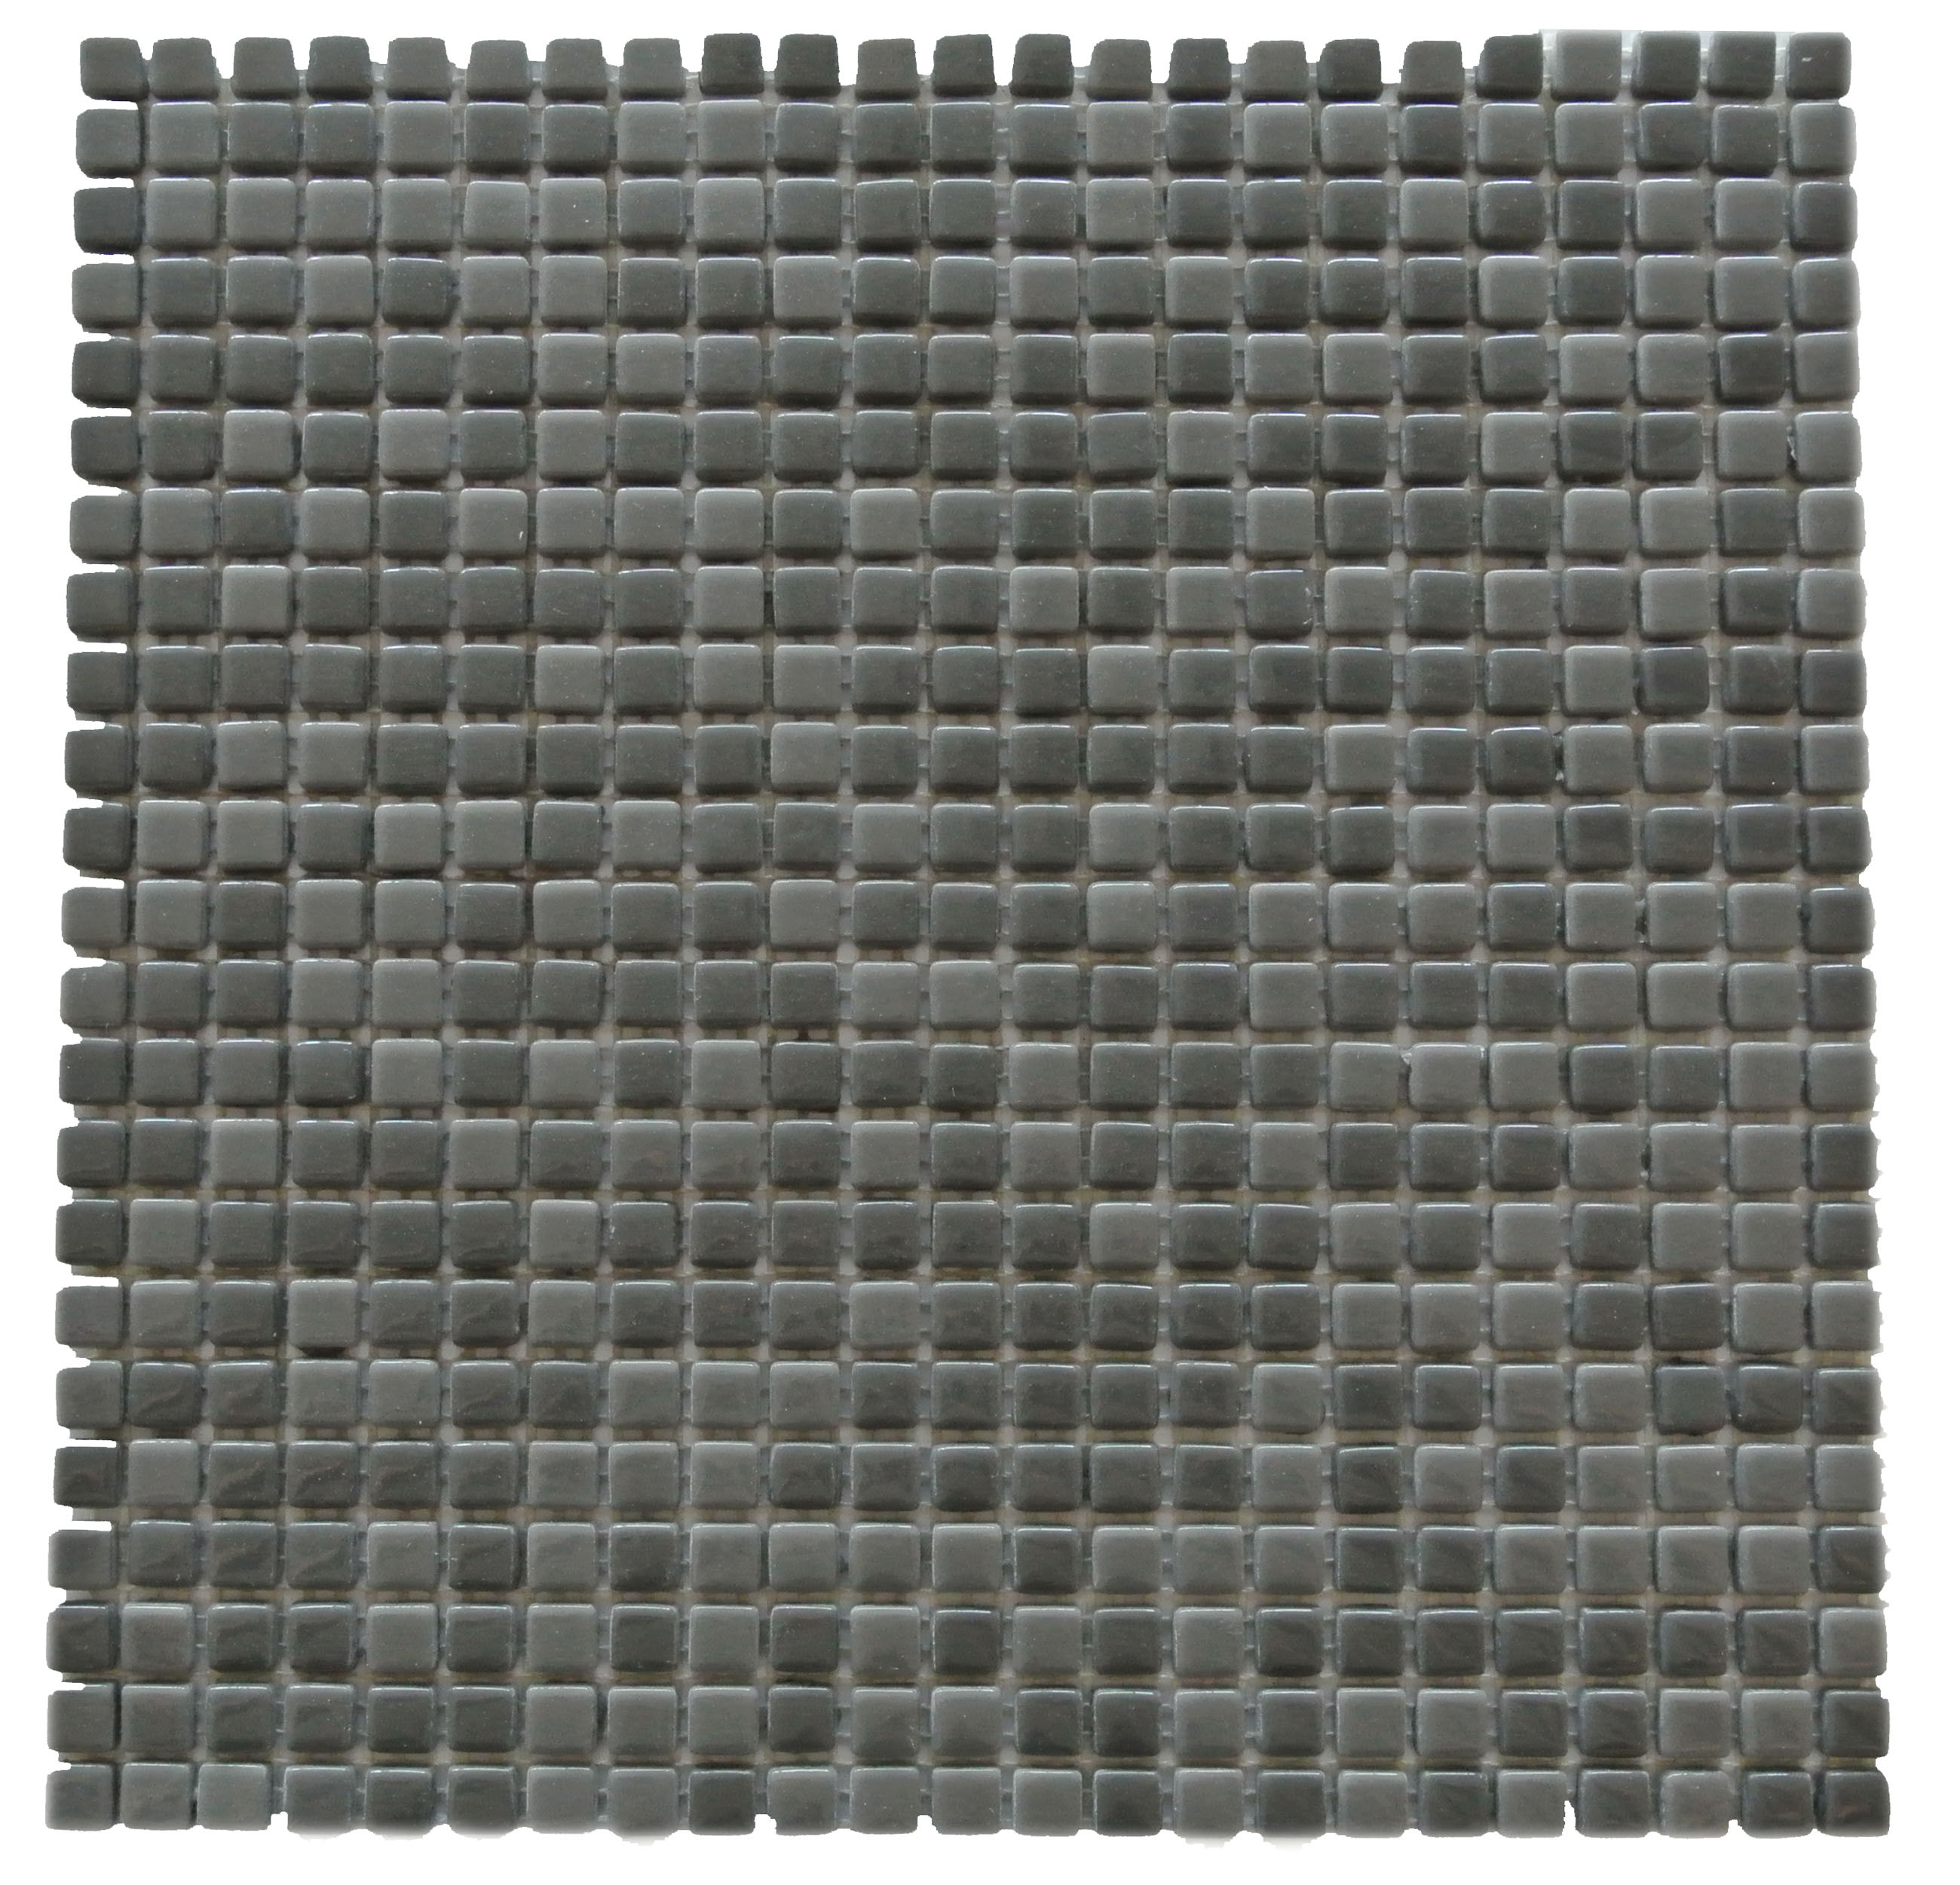 "Full Body 0.5"" x 0.5"" Glossy Dark Gray Glass Square Backsplash Mosaic Wall & Floor Tile"